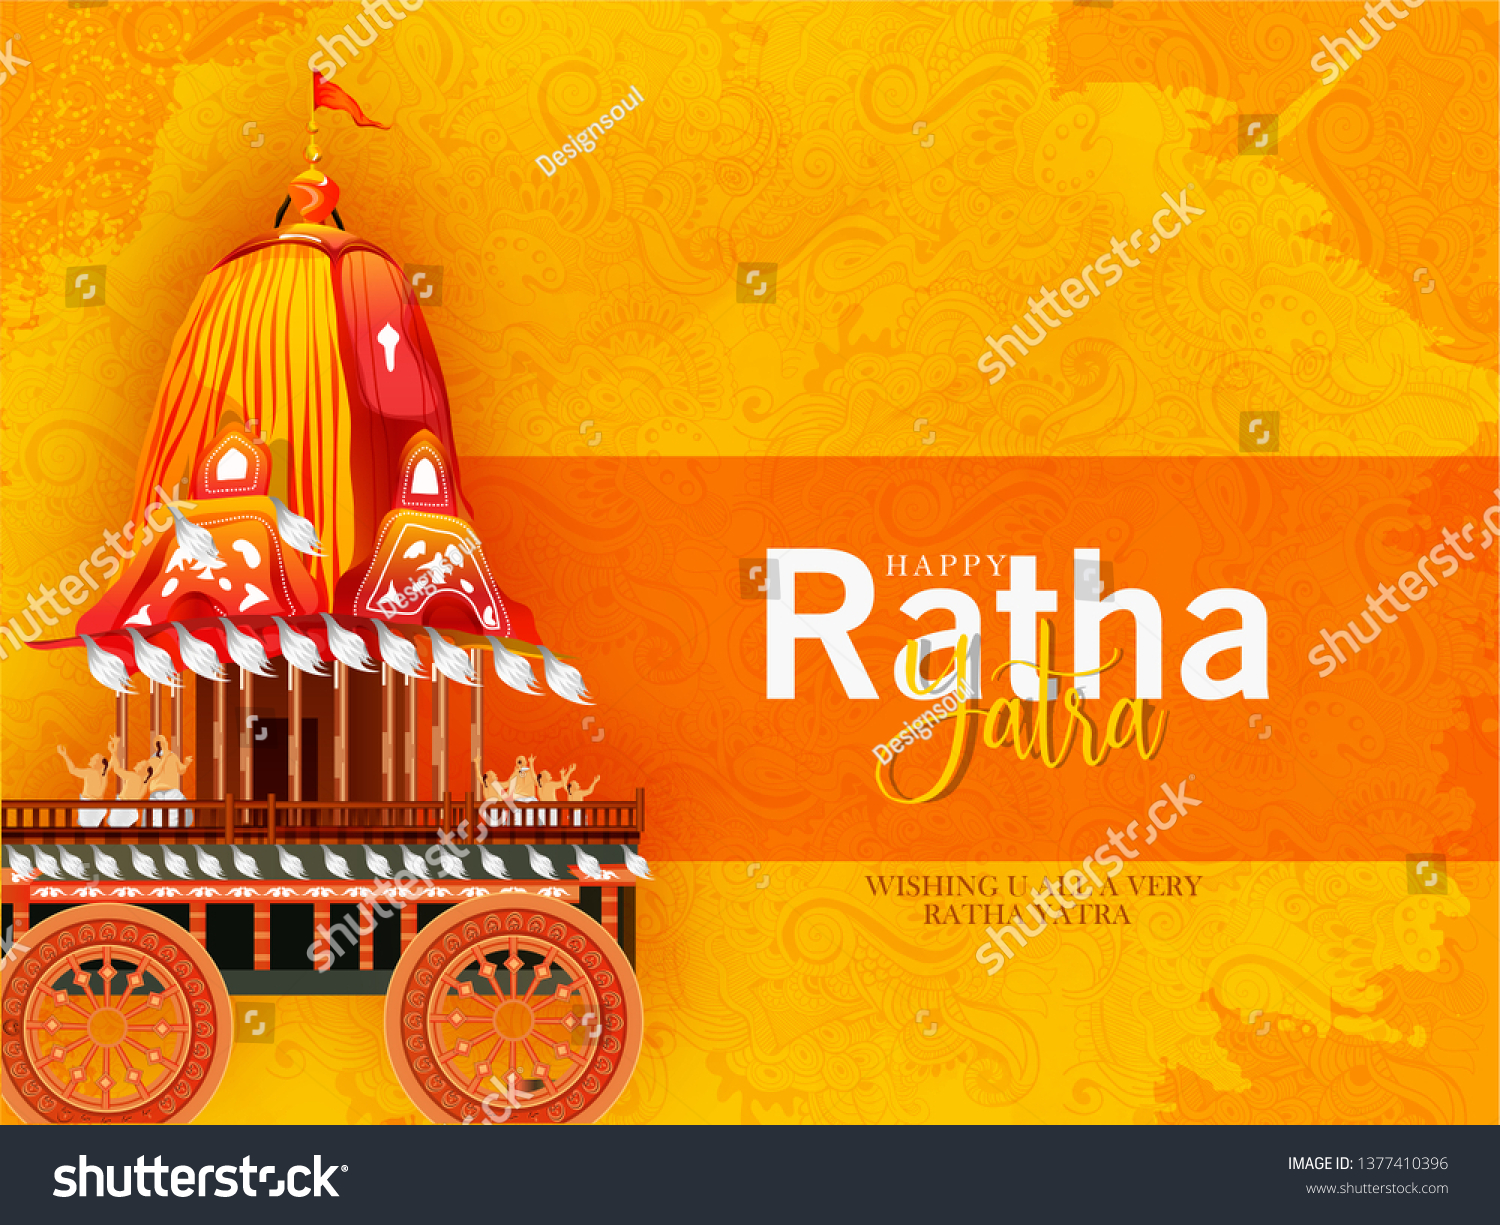 Rath Yatra festival (locally called Ratha Yatra) is based around the worship of Lord Jagannath,